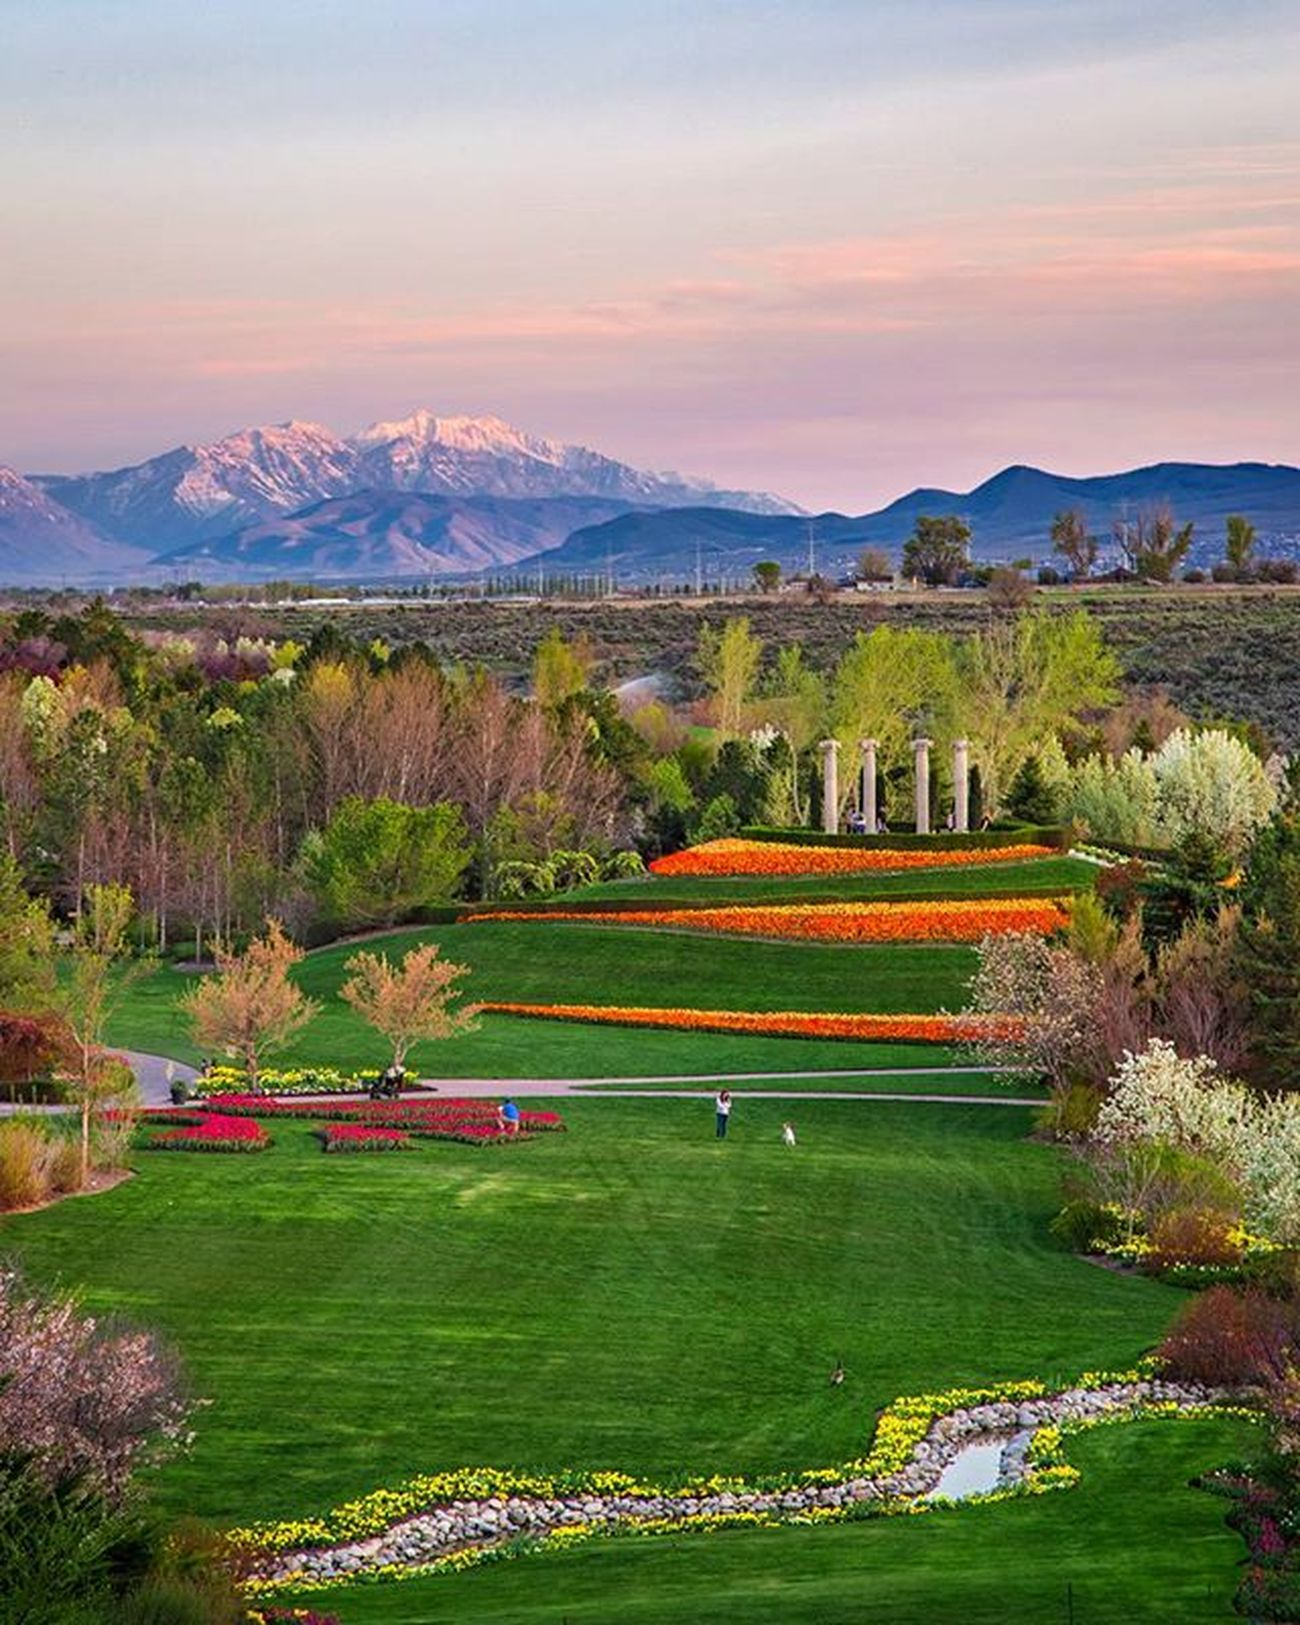 Mount Nebo looking over as spring is in full bloom at the @thankspoint gardens. So many flowers! Tulip Springishere Thanksgivingpoint Tulipfestival Flowers Utah Visitutahvalley Sunsets Wasatch Mountaincrushmonday